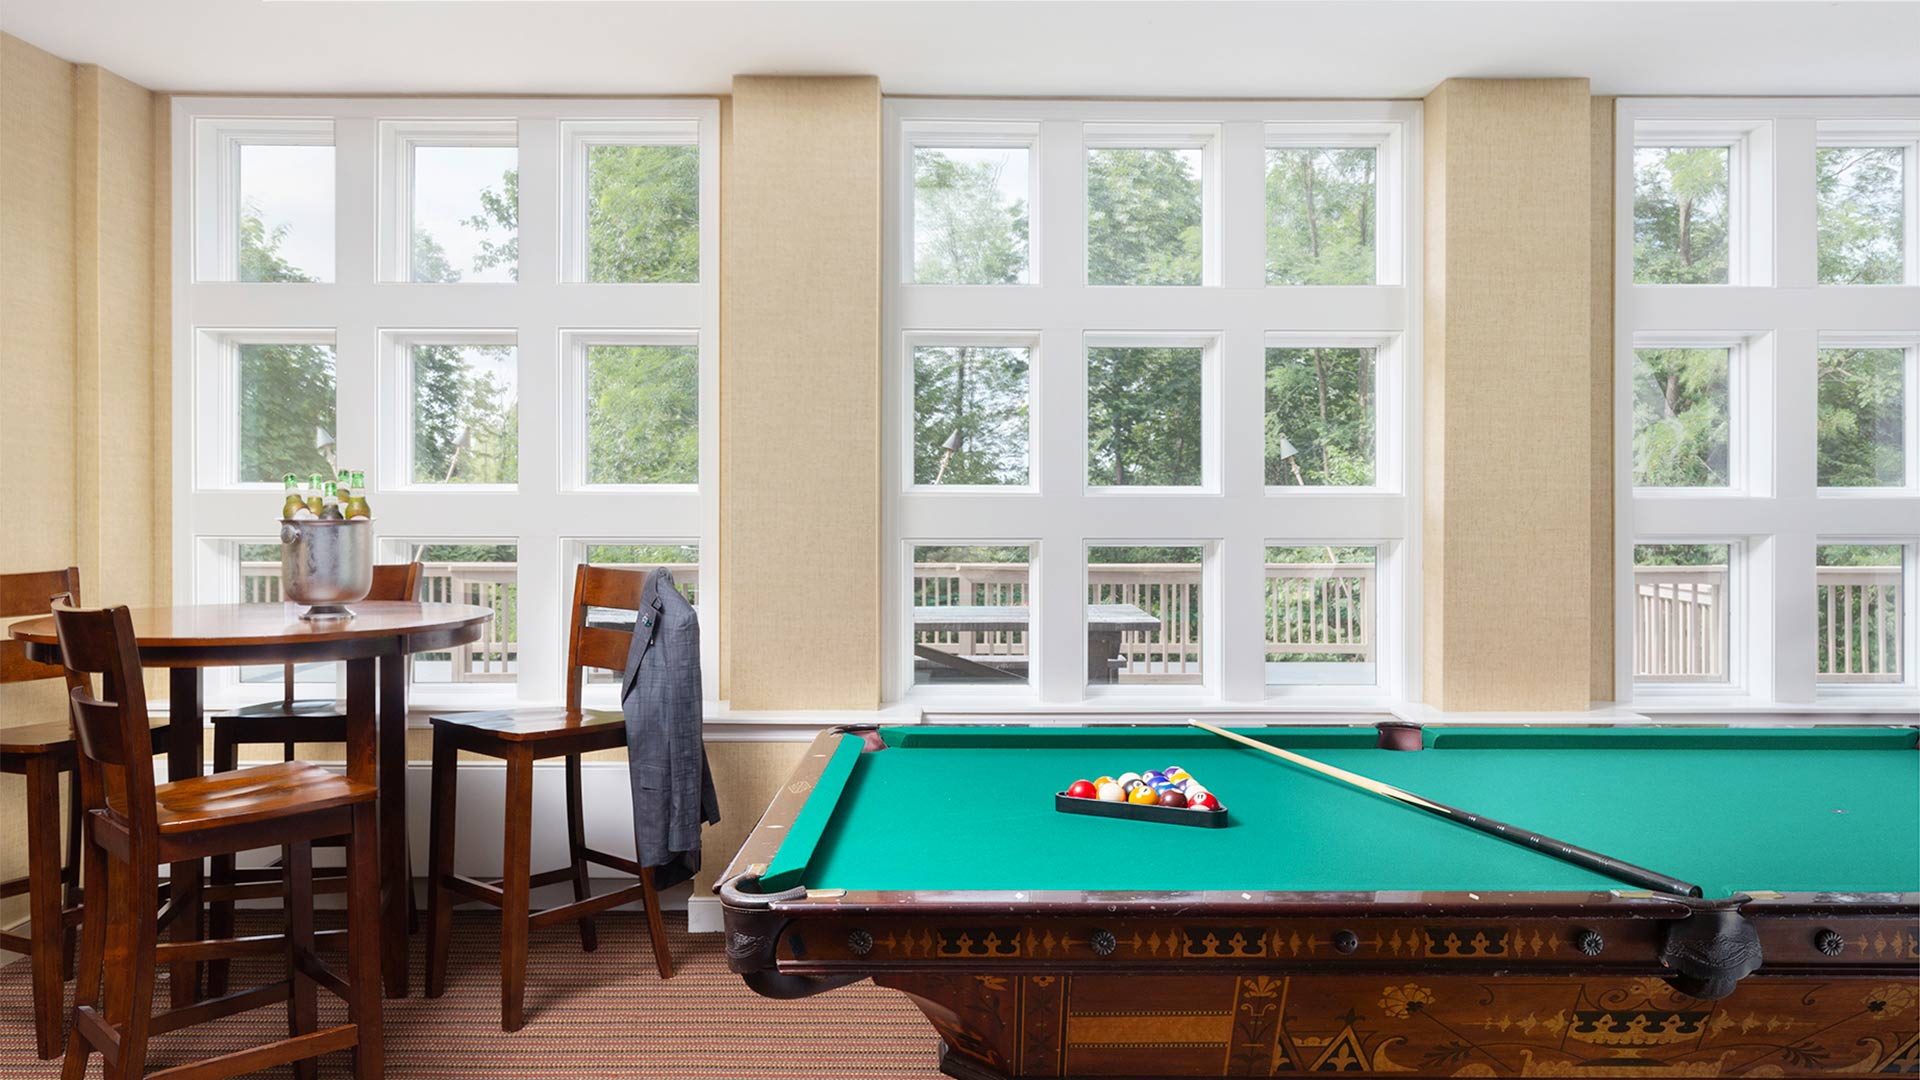 interior shot of a game room with a pool table and a table.